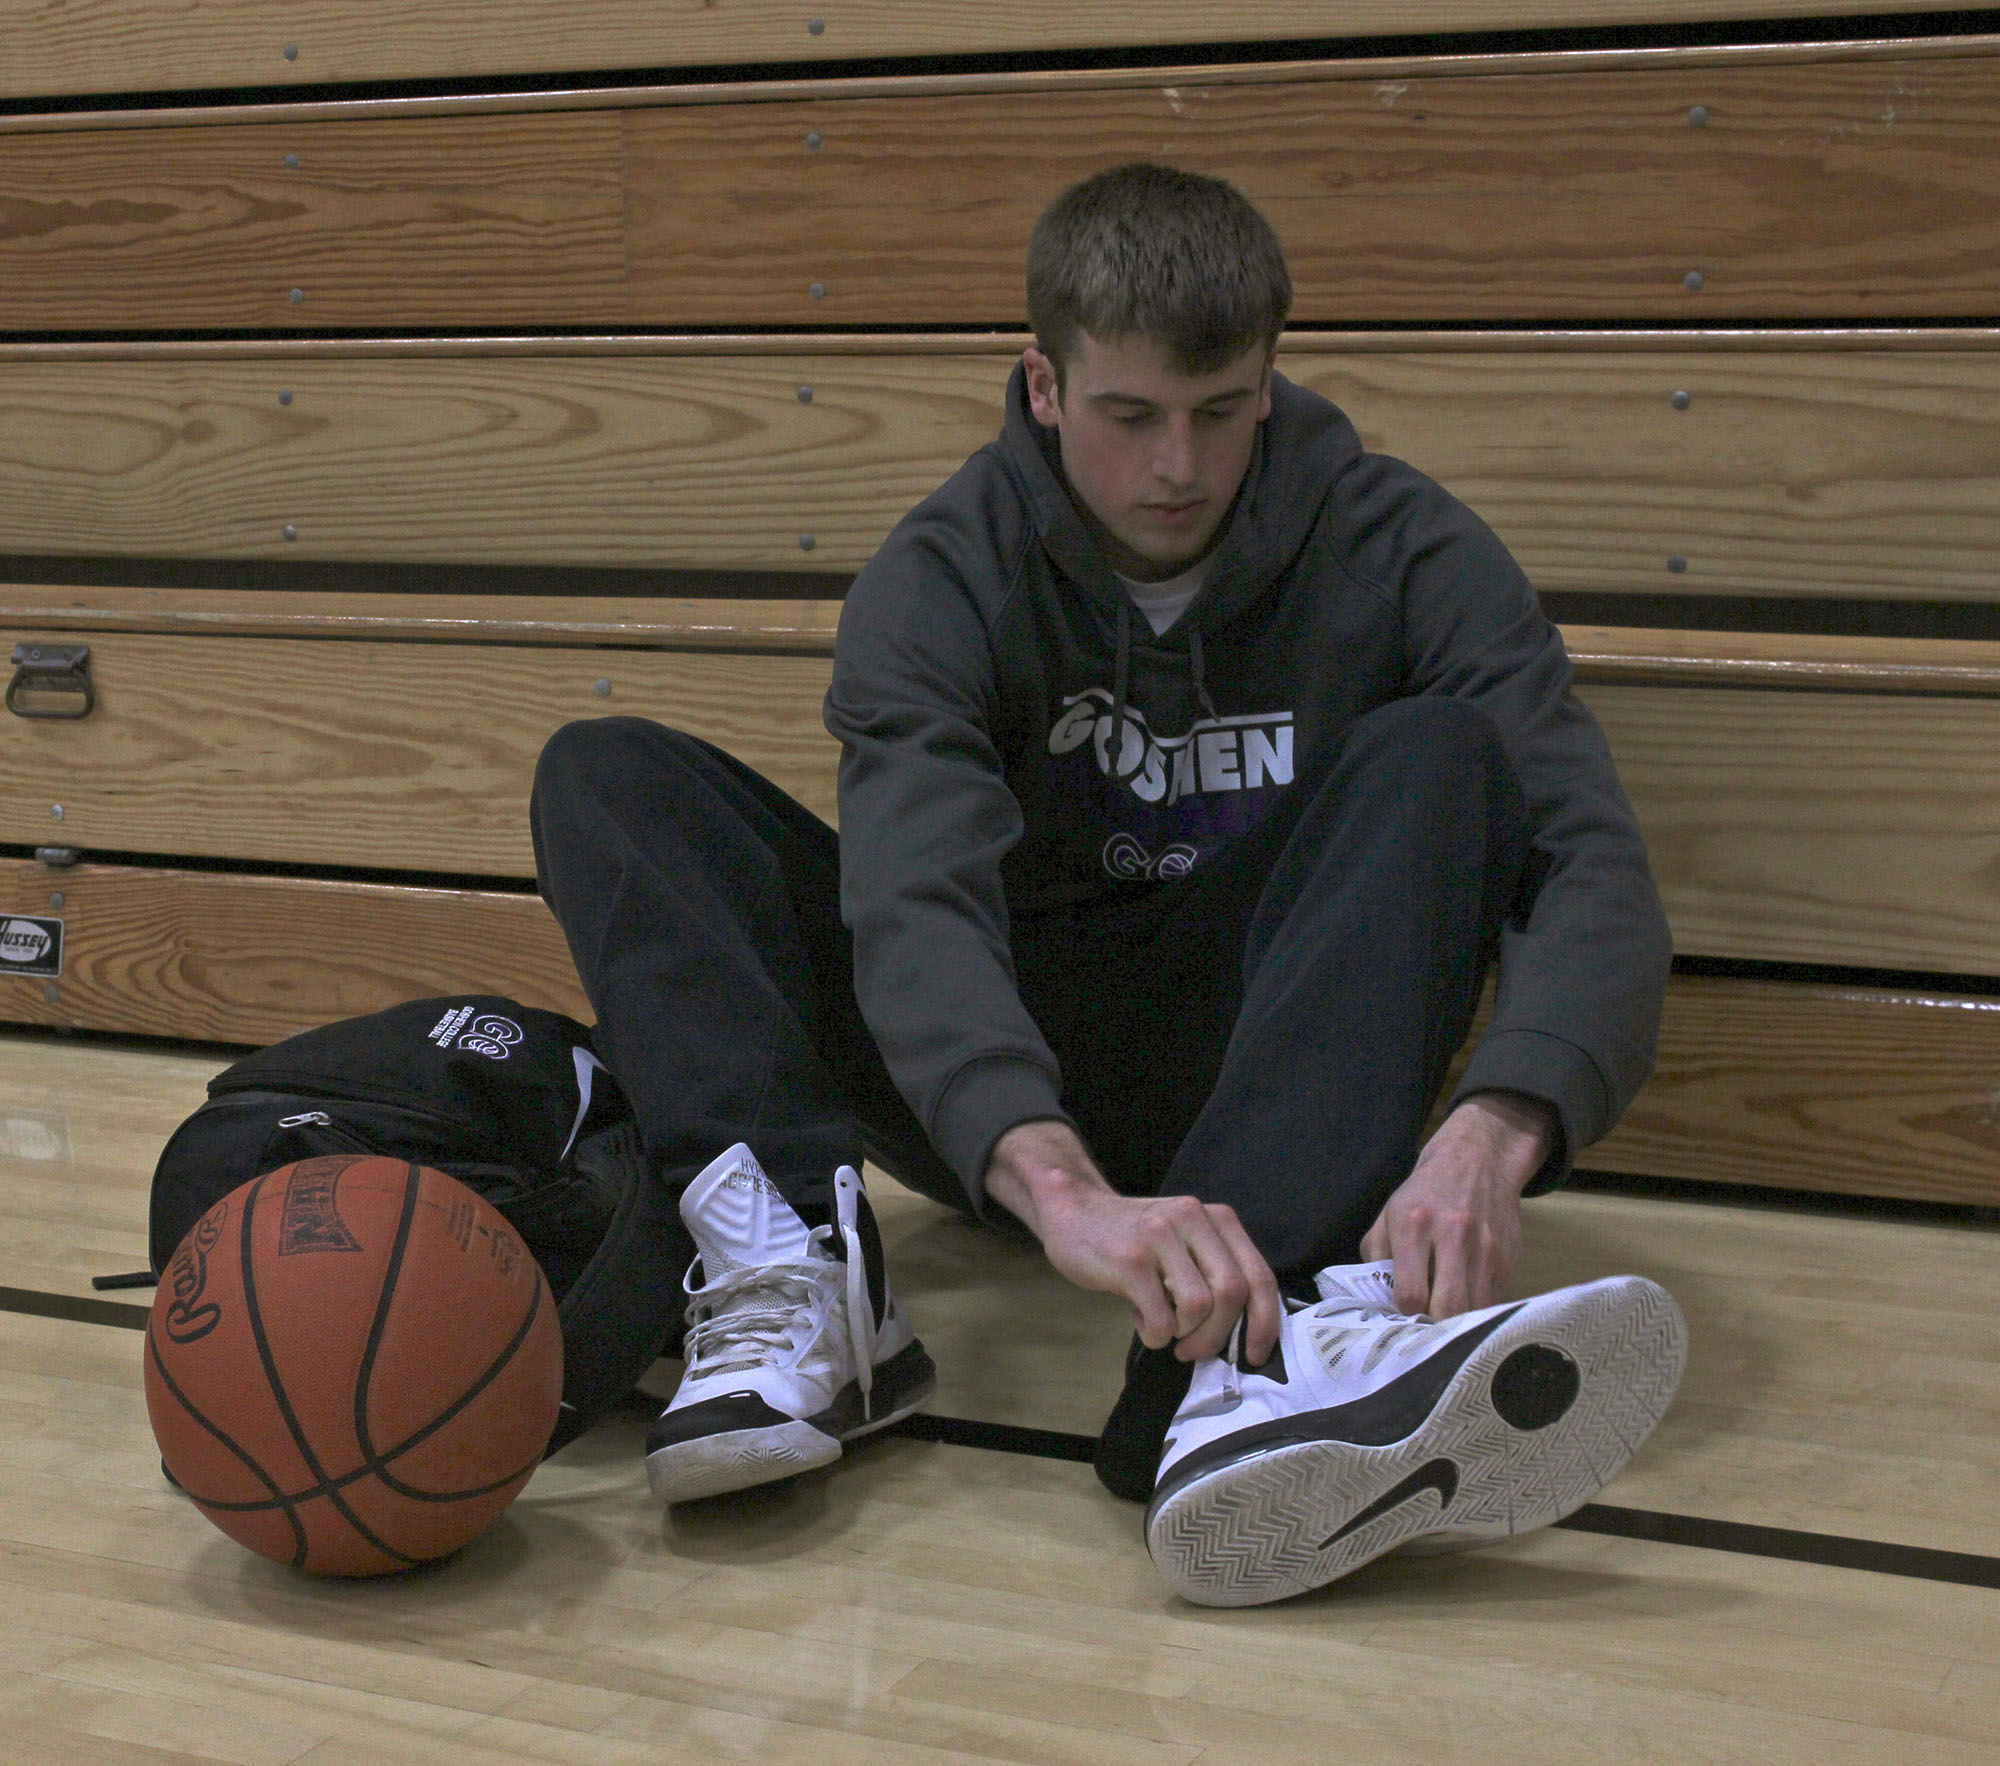 basketball player putting shoes on